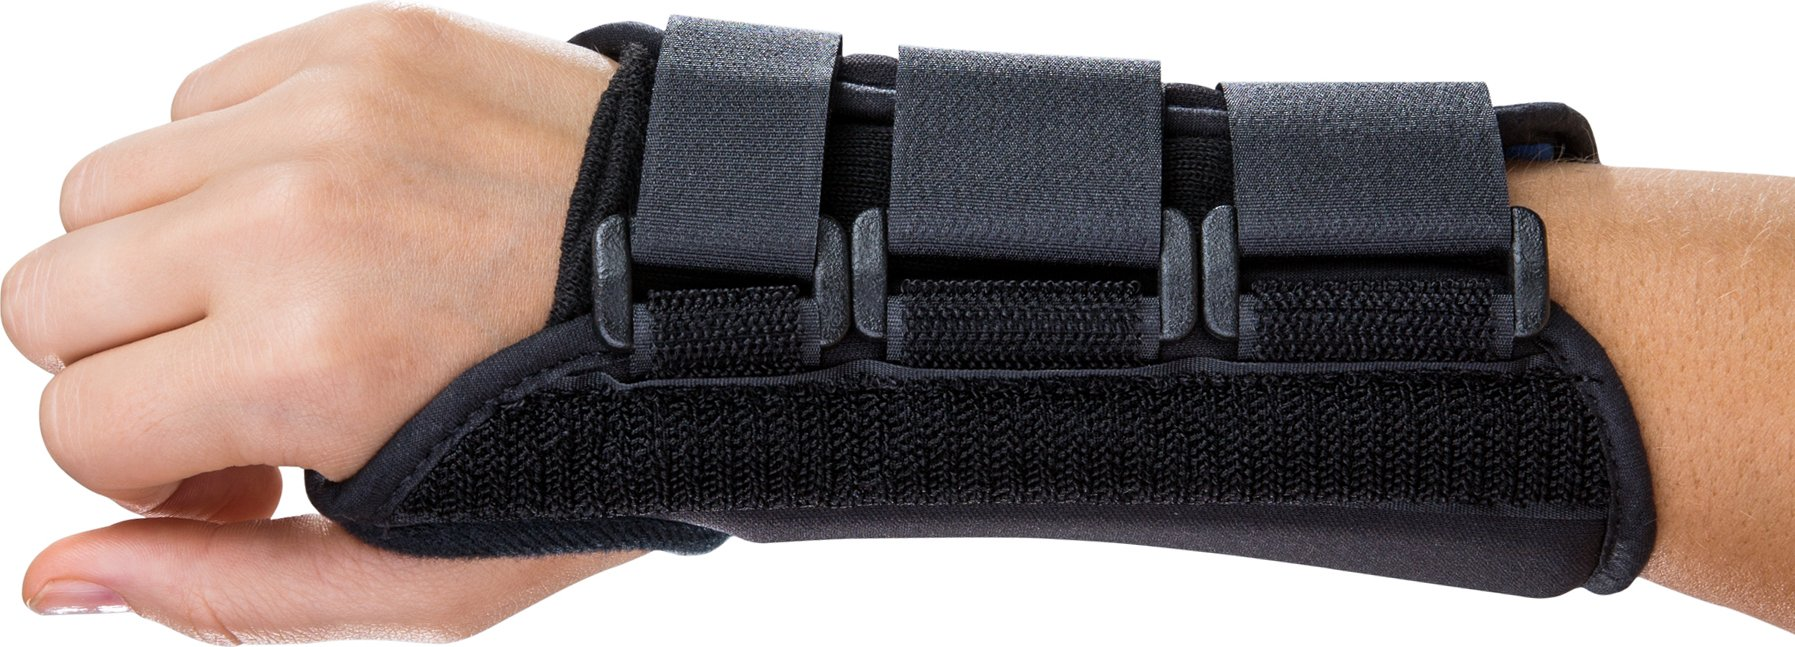 DJ Orthodics ProCare ComfortFORM Wrist Support Brace: Right Hand, X-Small by DonJoy (Image #1)